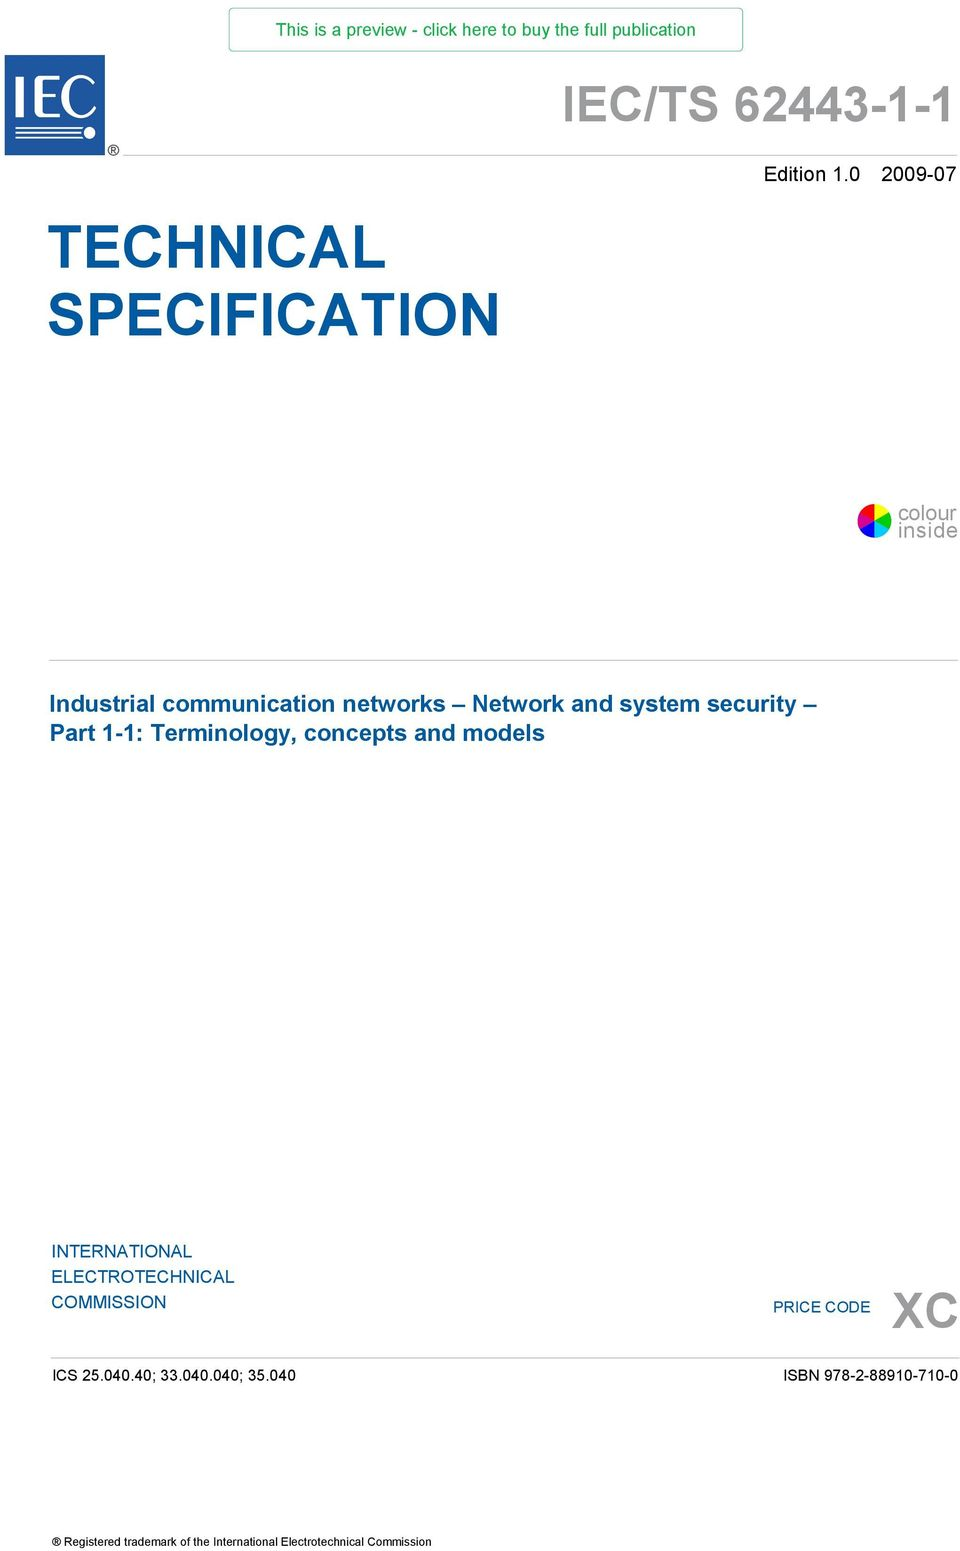 1-1: Terminology, concepts and models INTERNATIONAL ELECTROTECHNICAL  COMMISSION PRICE CODE